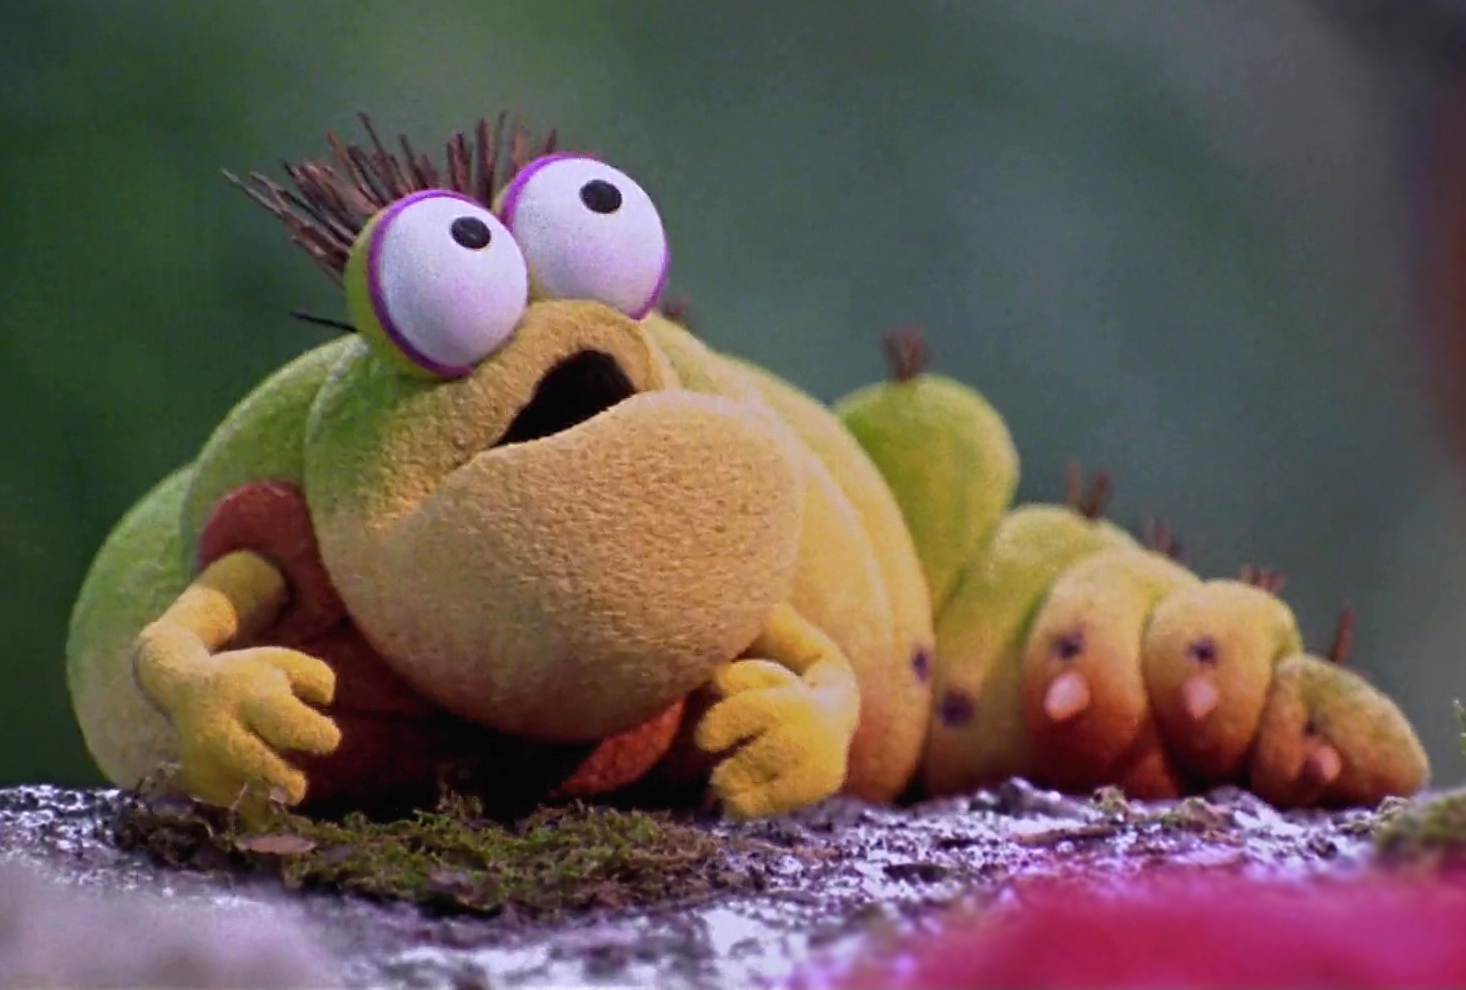 The Caterpillar (Elmo in Grouchland)